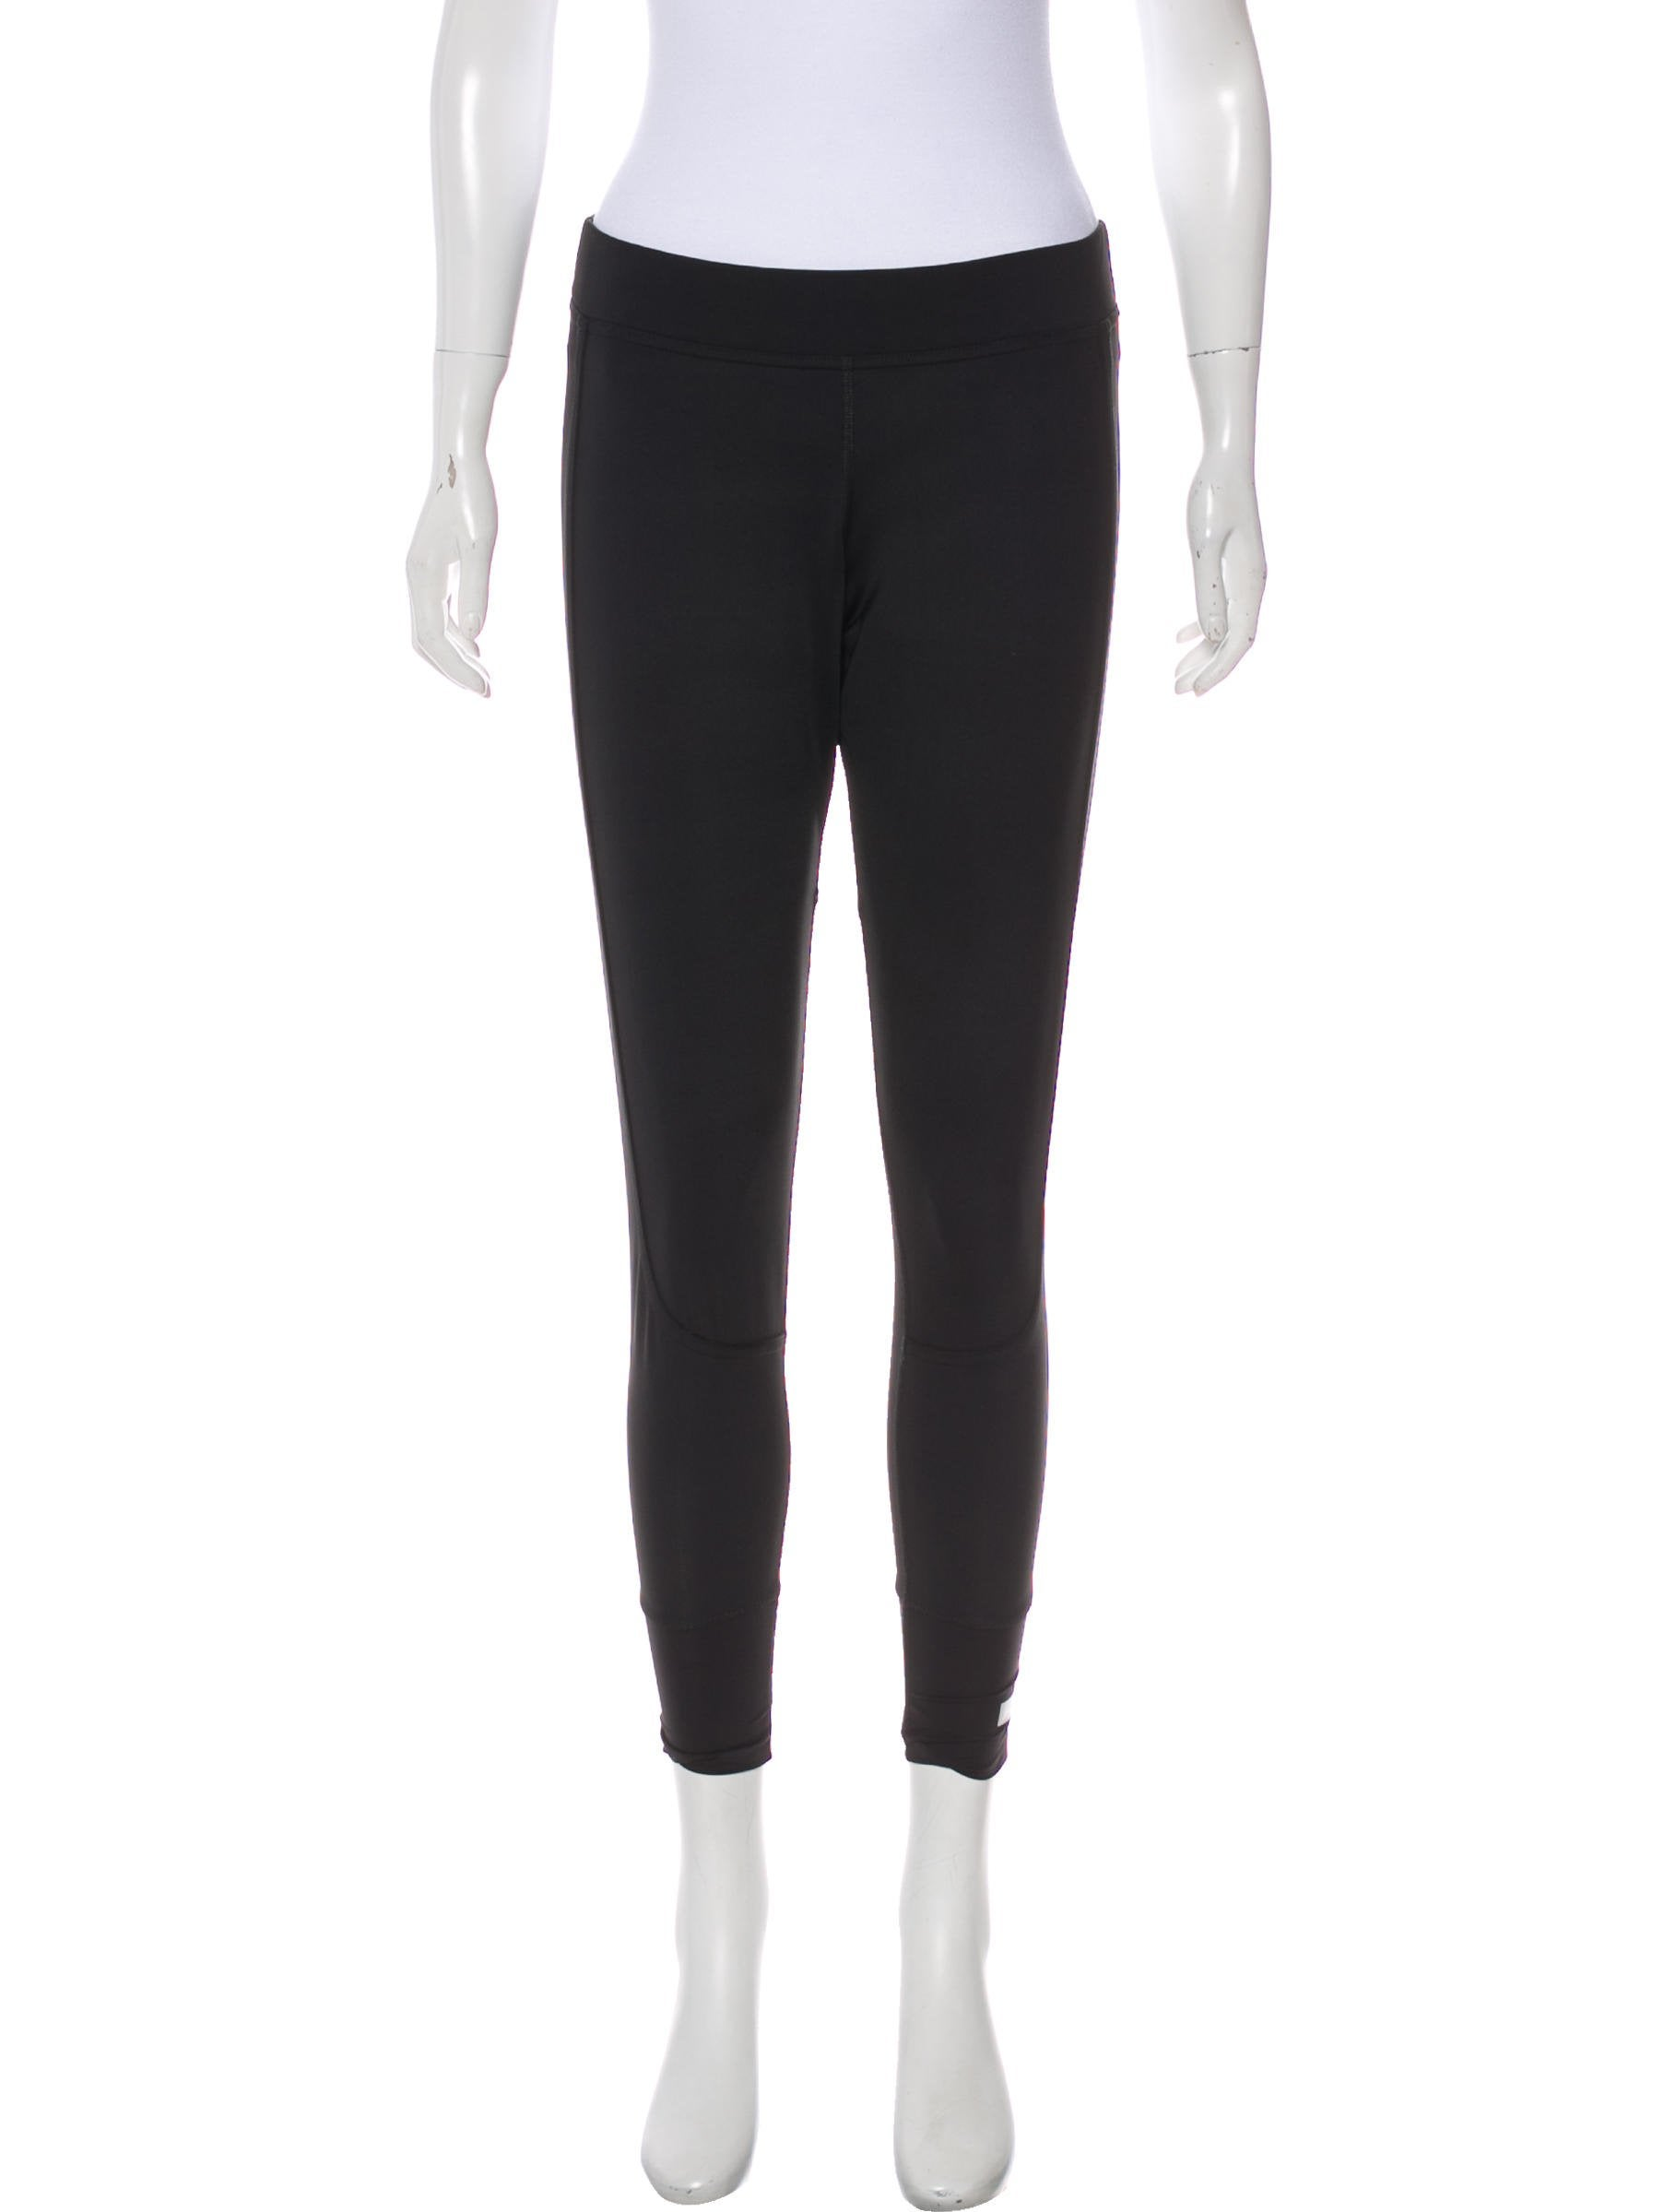 2c8f3ccffc536 Stella McCartney for Adidas Mid-Rise Athletic Leggings - Clothing ...